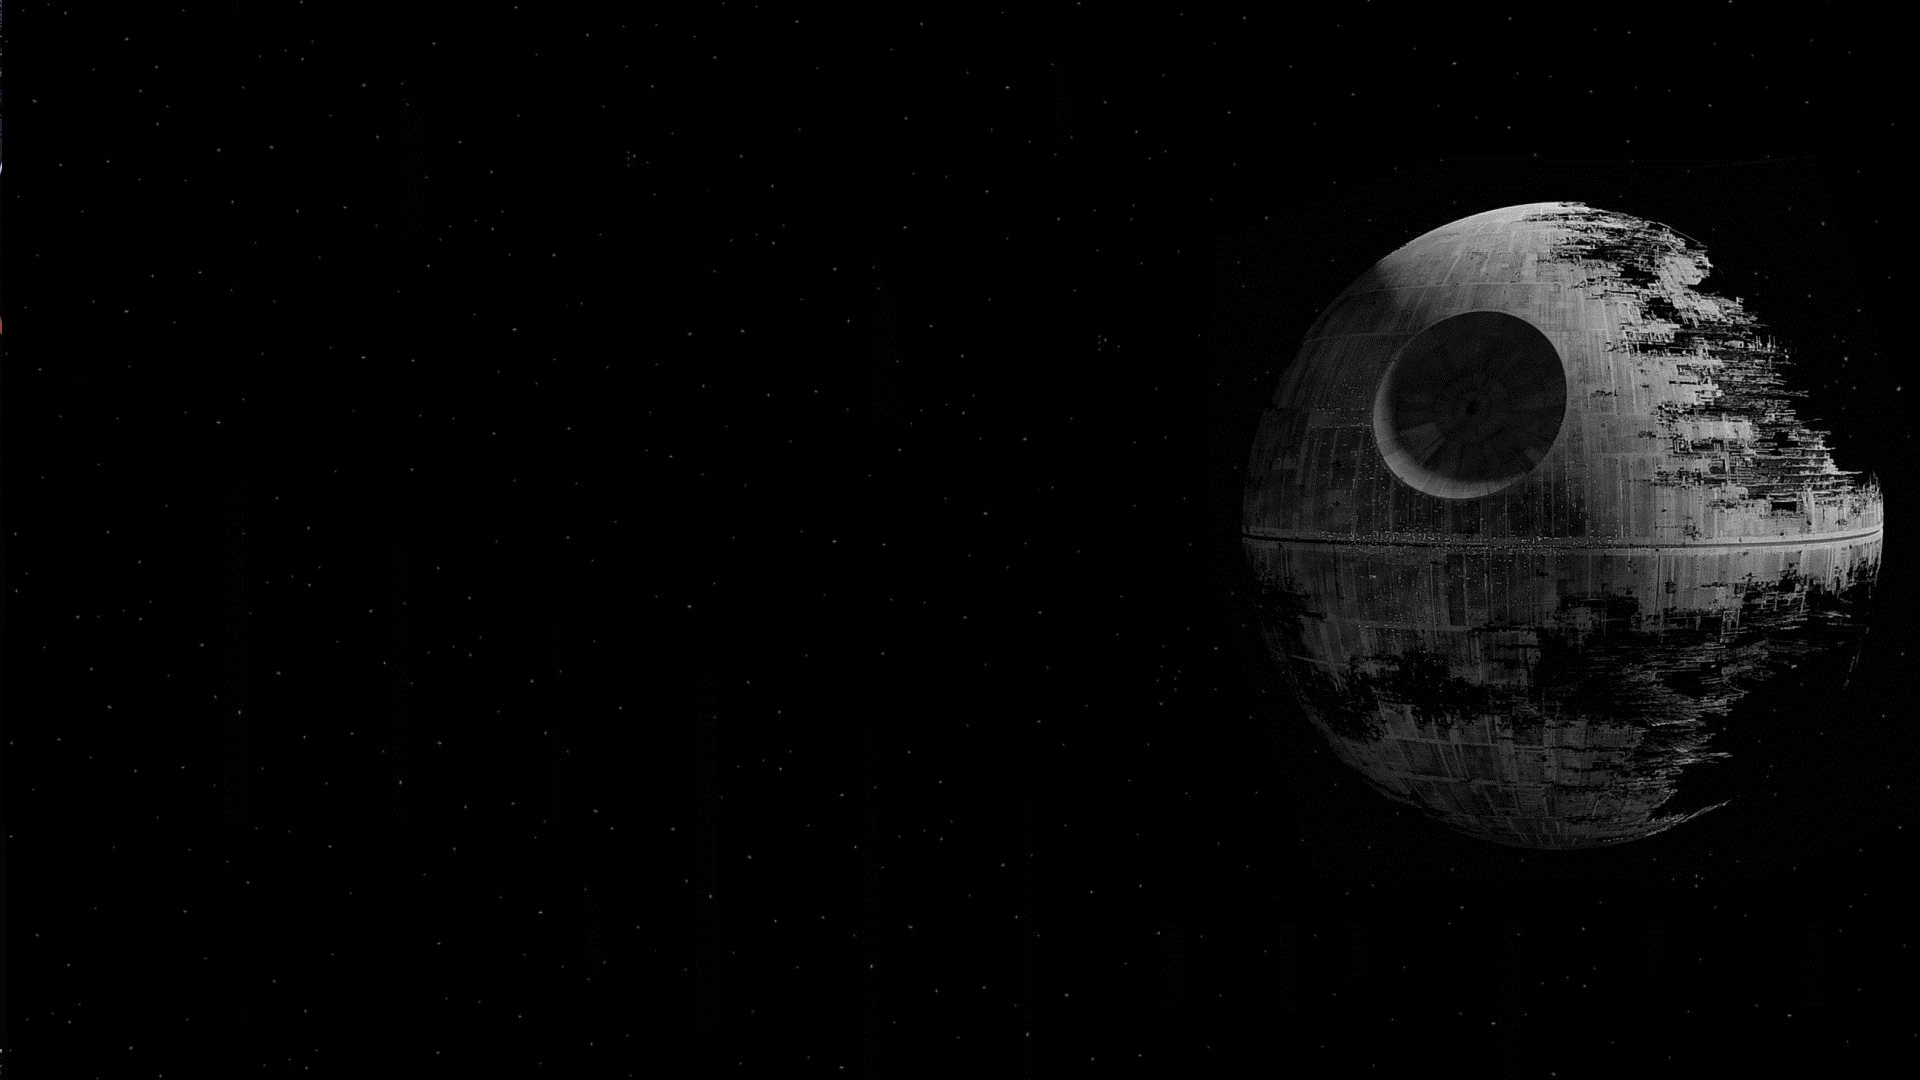 3840x1080 Wallpaper Star Wars Wallpapersafari Free Photos